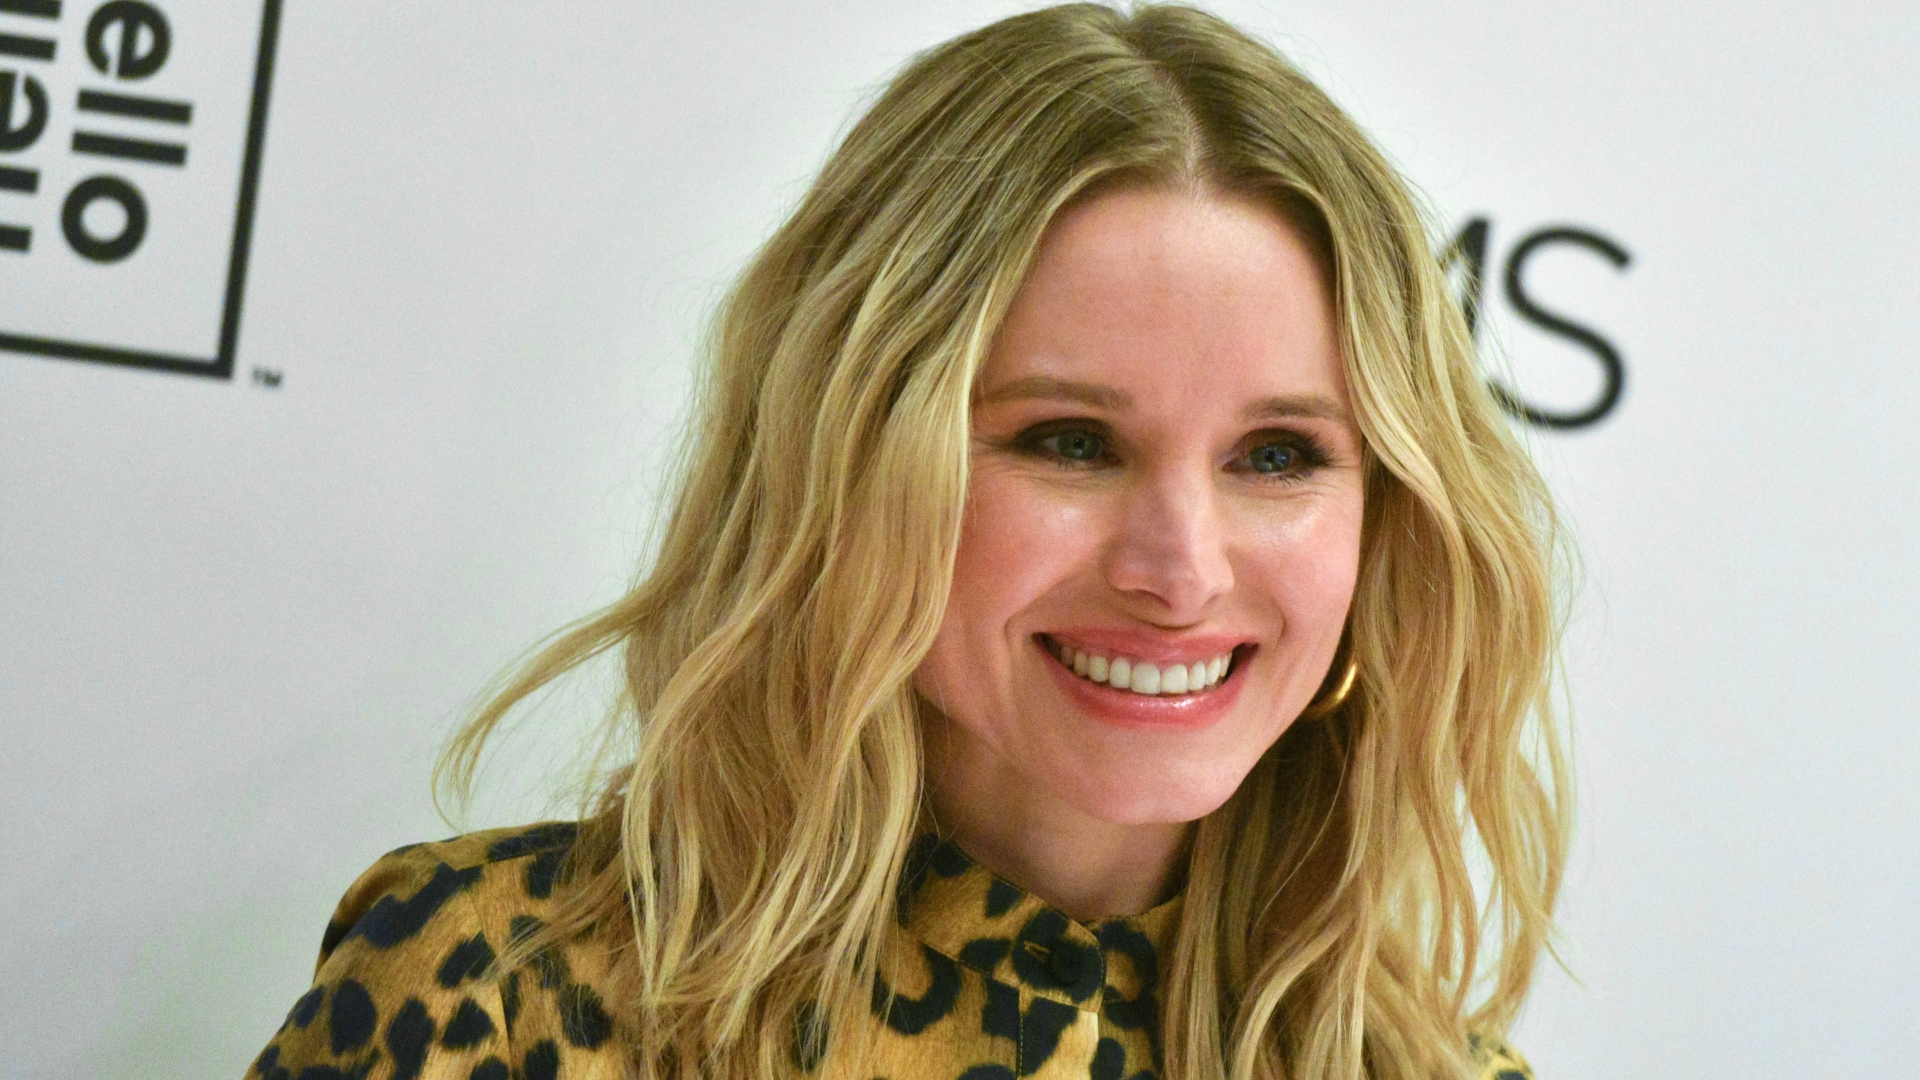 Kristen Bell Responded to Those Pregnancy Rumors in the Best